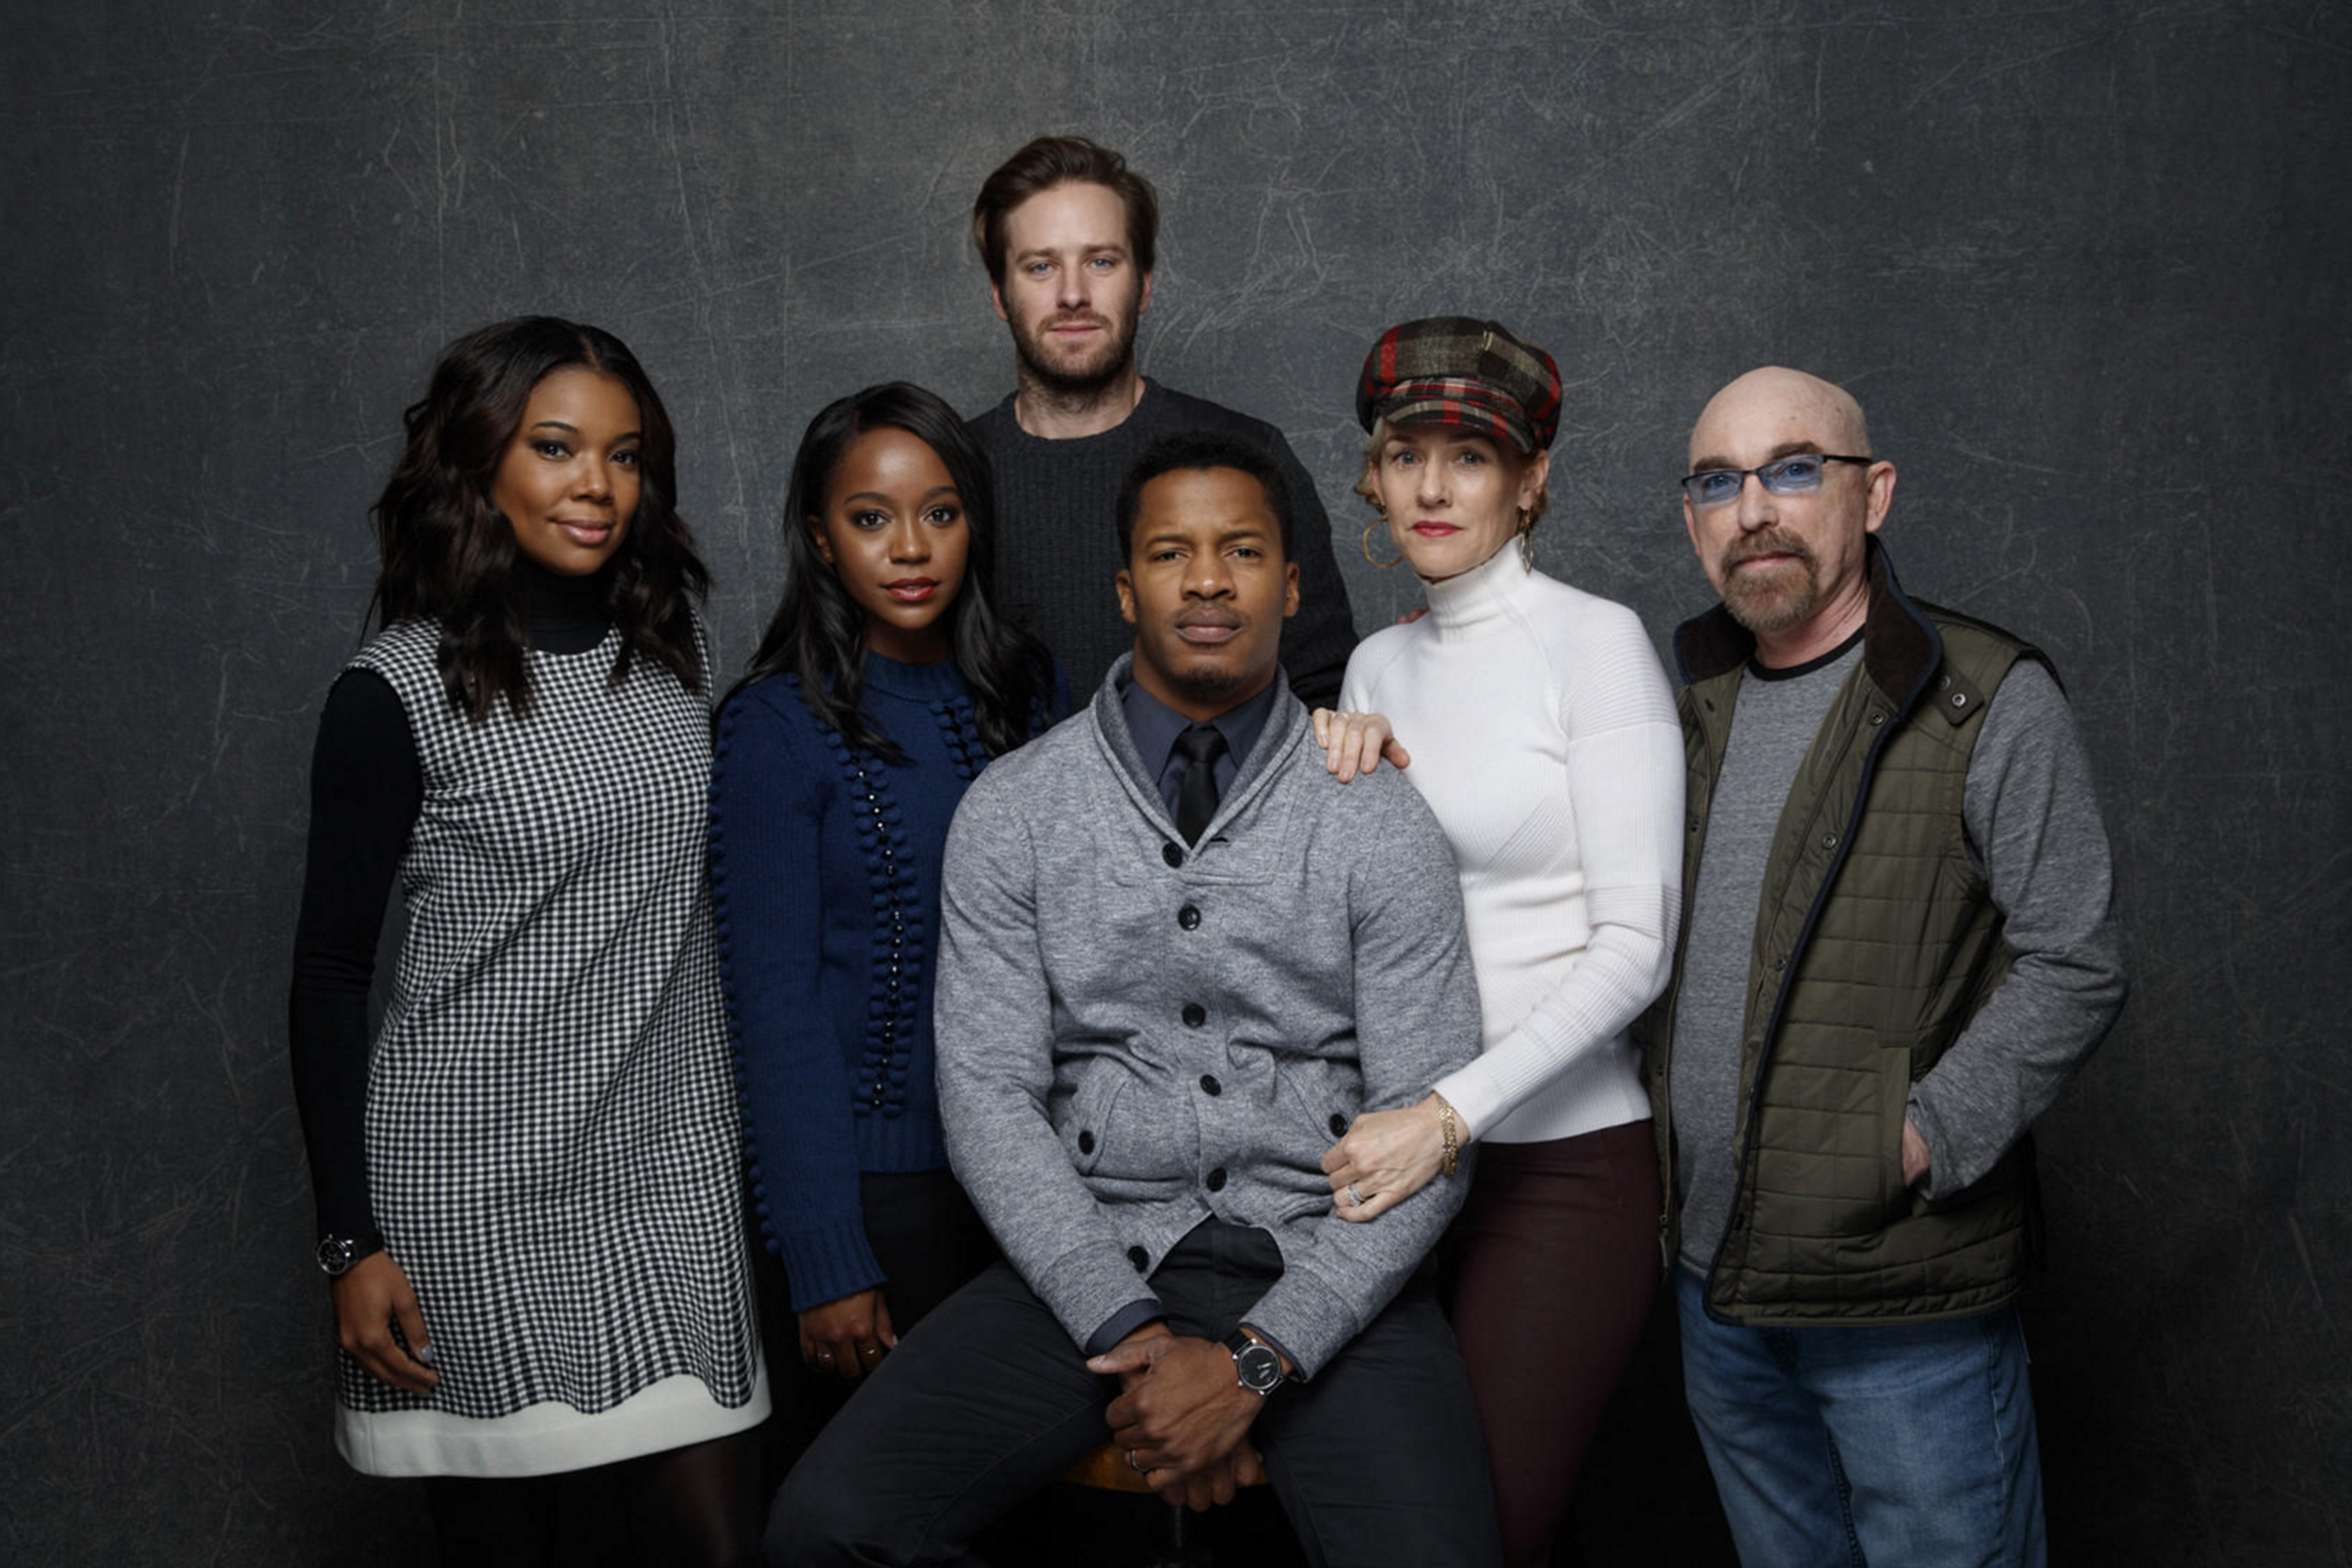 From Left To Right: Gabrielle Union, Aja-Naomi King, Armie Hammer, Nate Parker, Penelope Ann Miller, Jackie Earle Haley